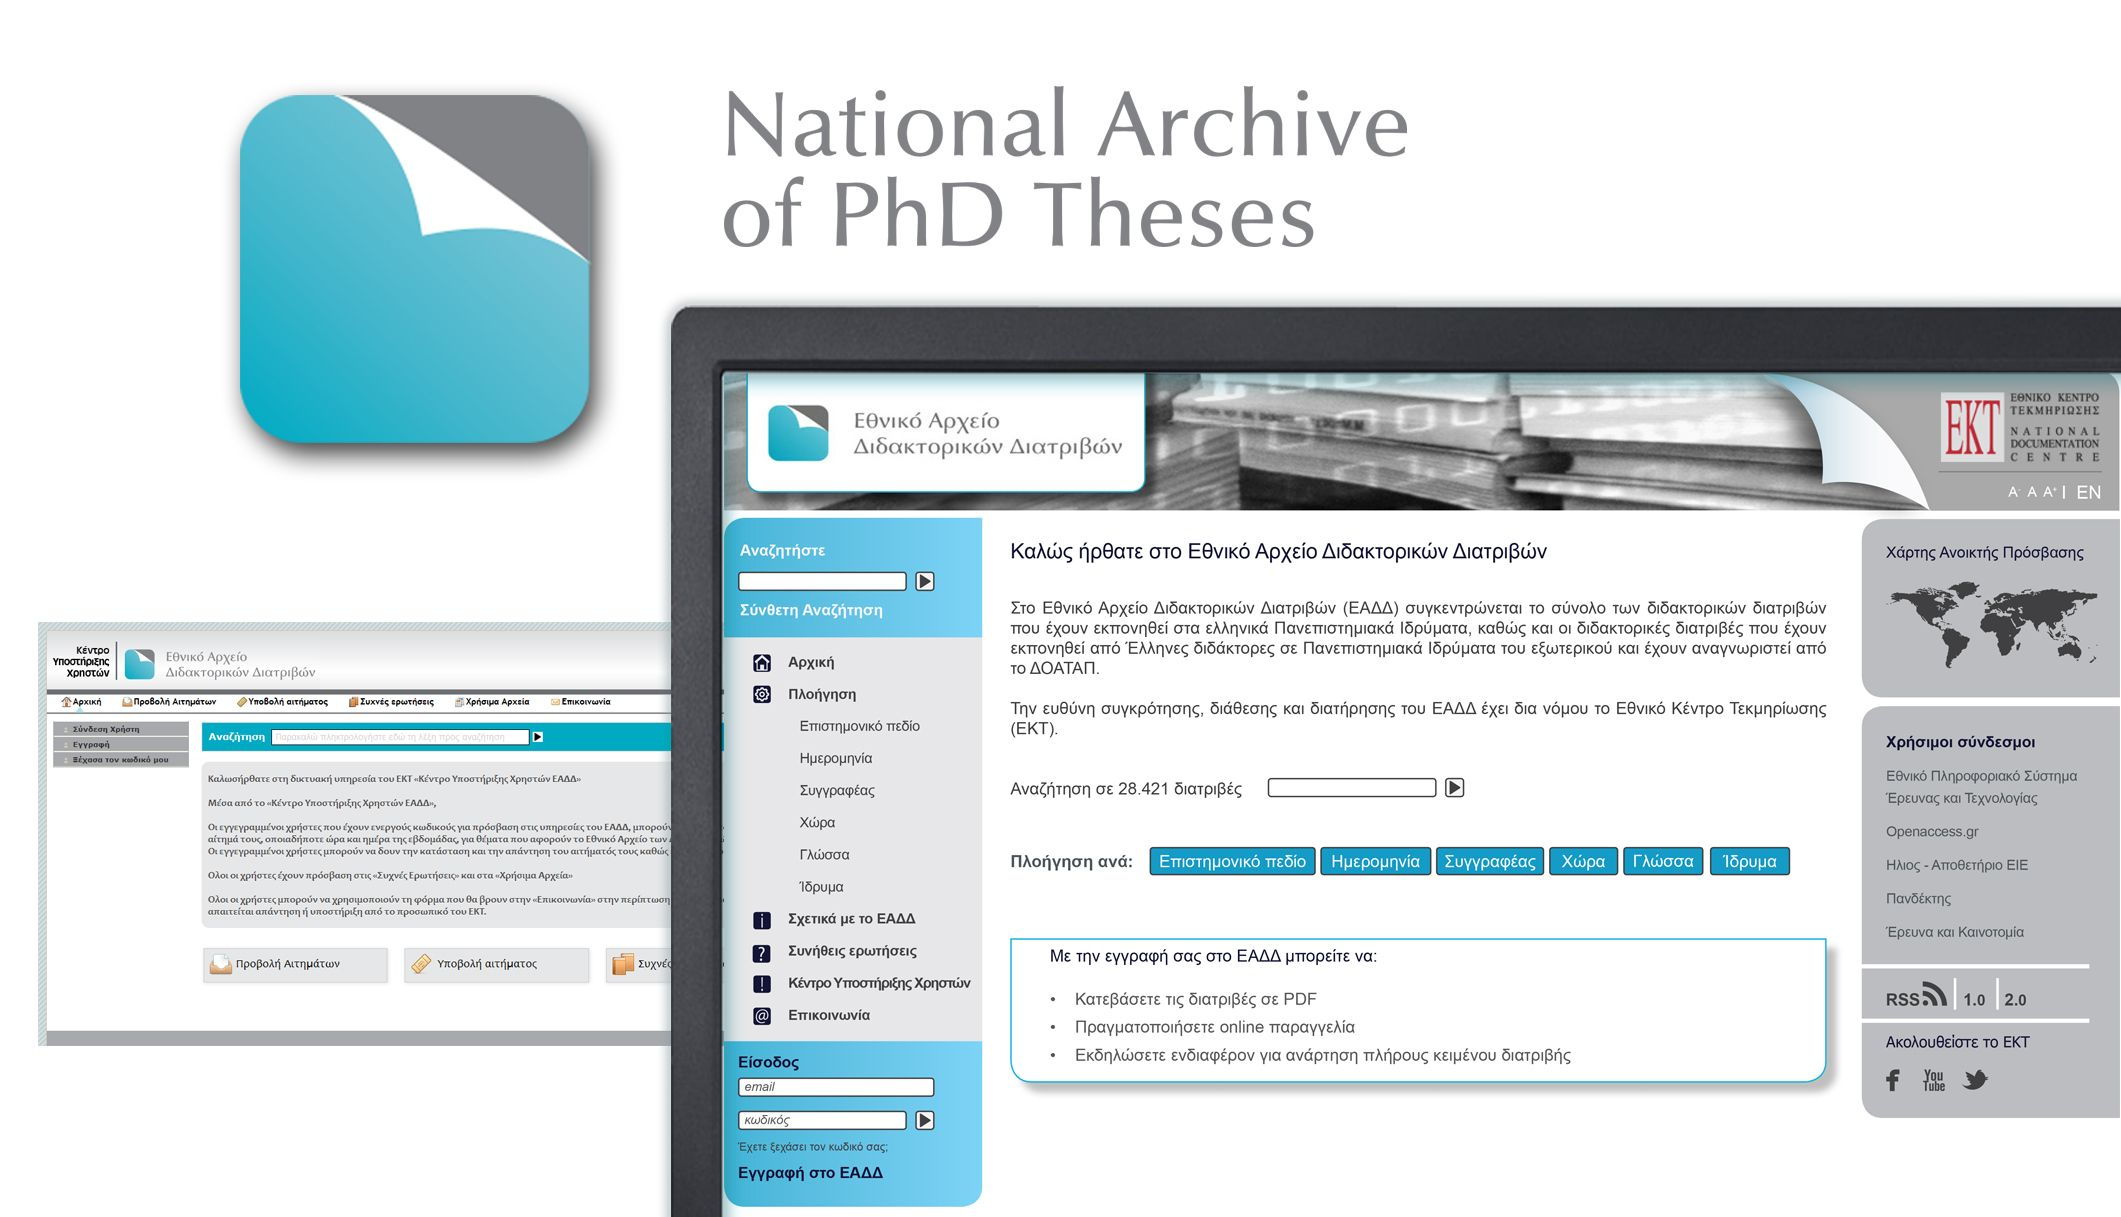 phd thesis access Check the university digital conservancy for online access to dissertations and theses from 2007 to present as well as historic, scanned theses from 1887-1923.